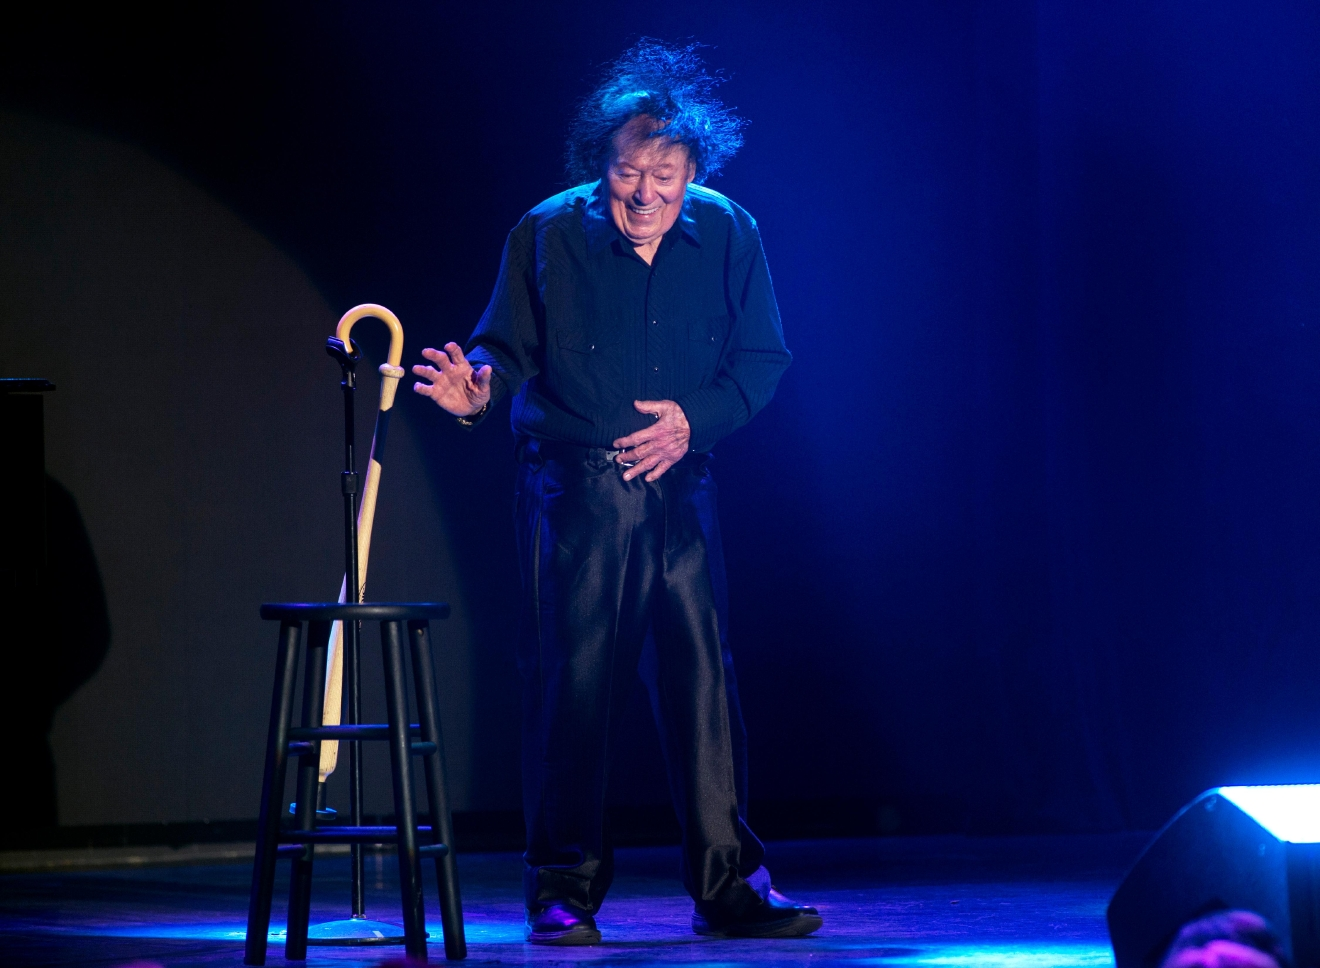 Comedian Marty Allen performs a little dance to celebrate his 95th birthday during a show at the South Point Thursday, March 23, 2017. [Sam Morris/Las Vegas News Bureau]